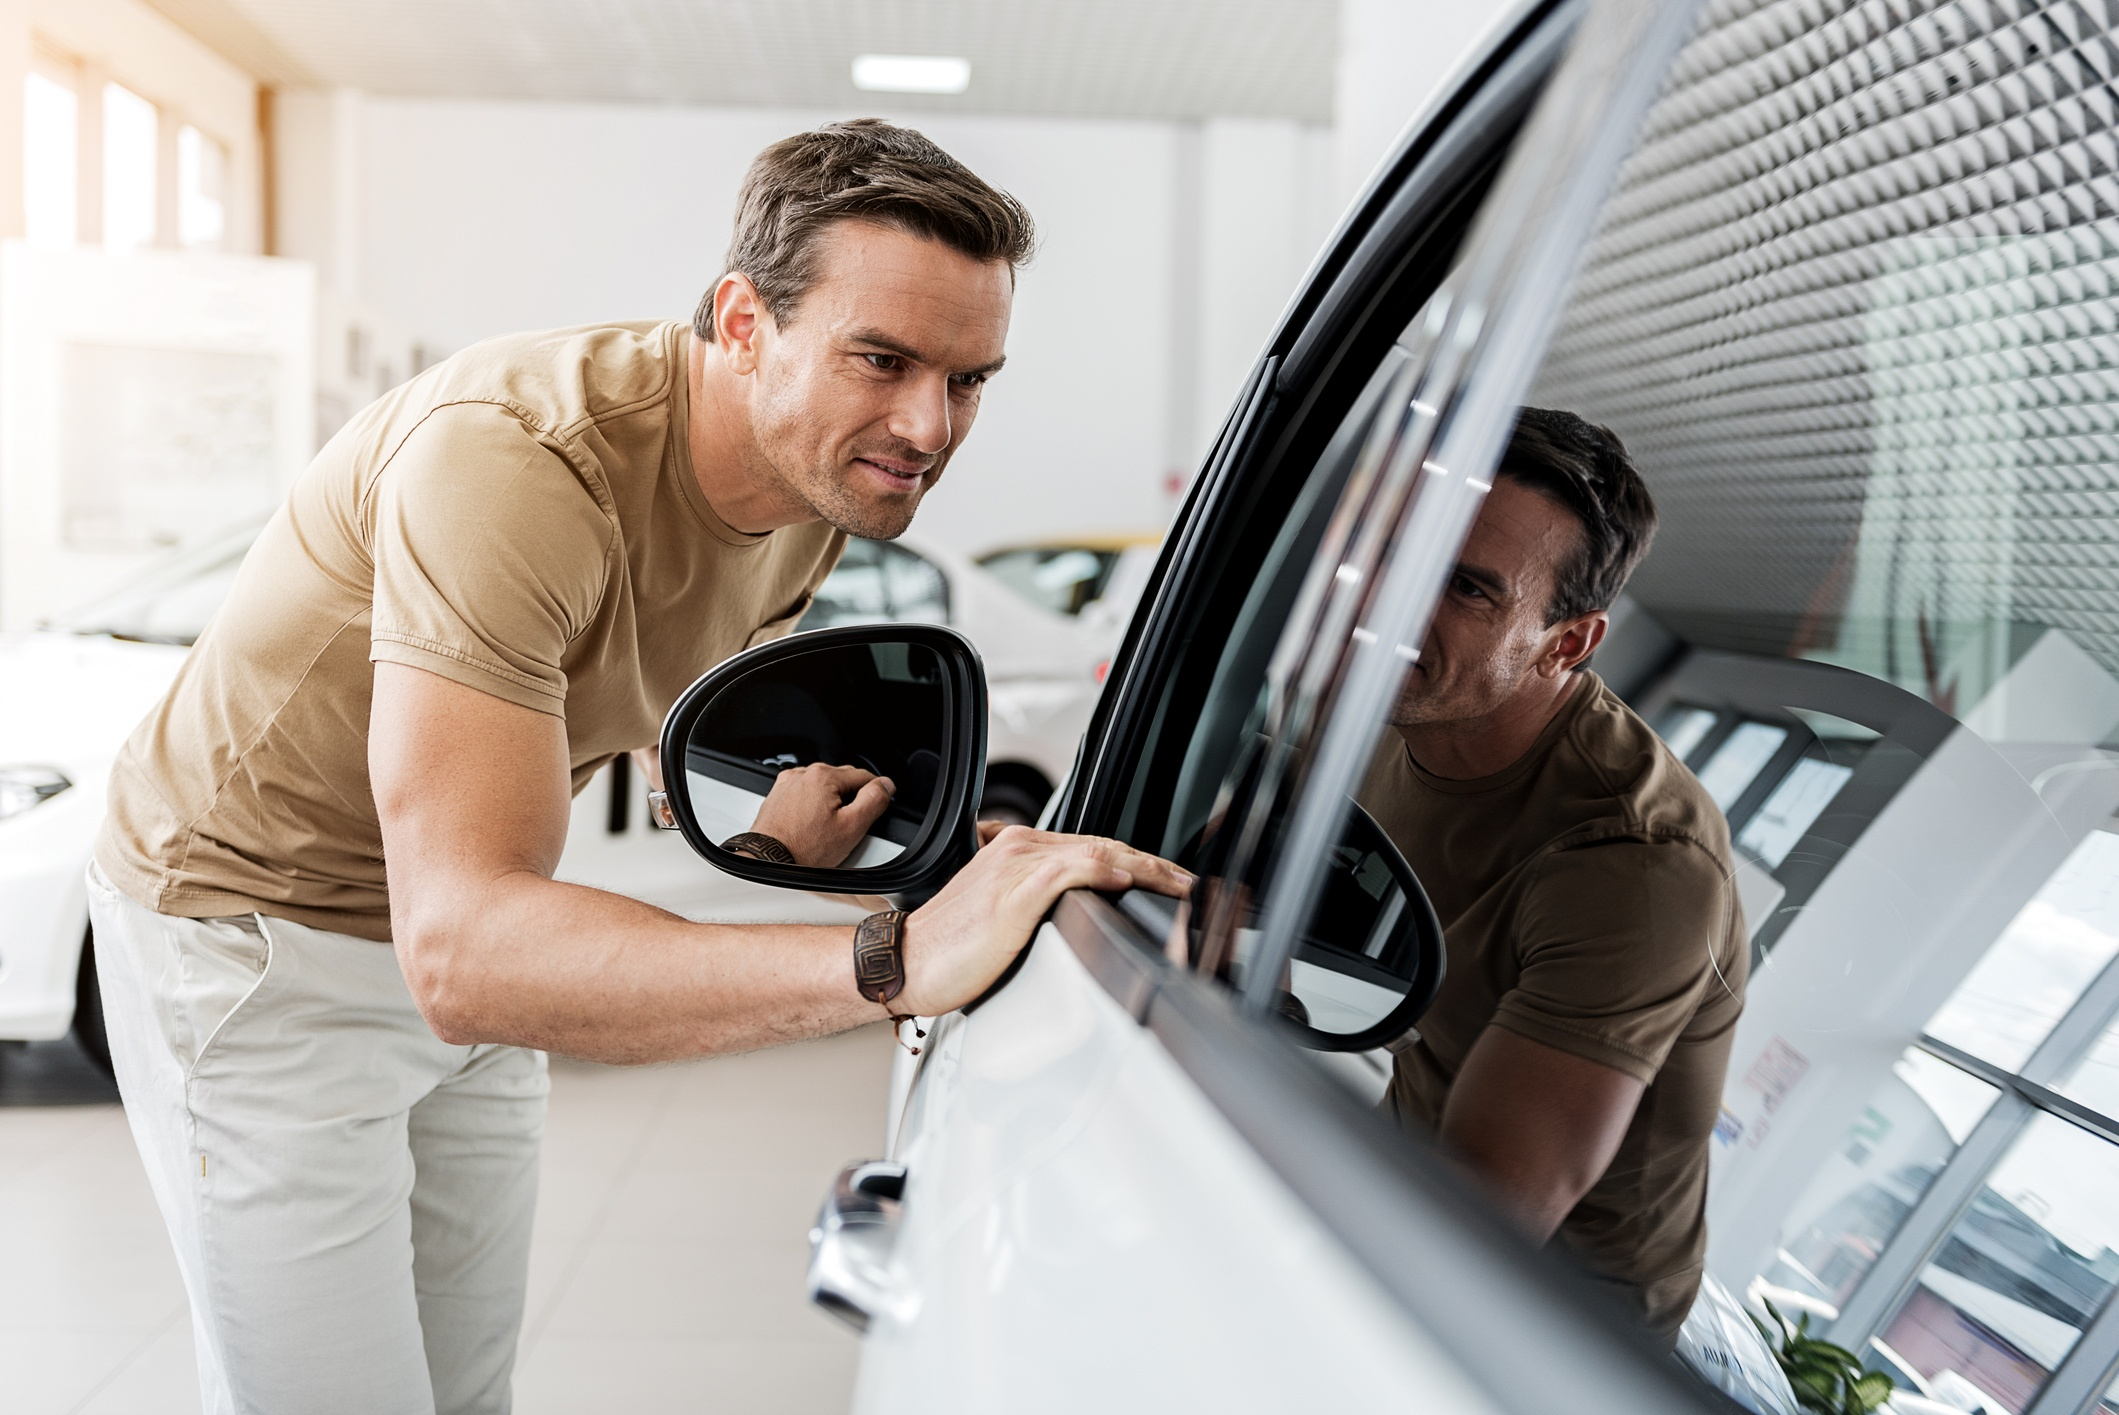 miling man expressing concernment while looking at passenger compartment through window of automobile